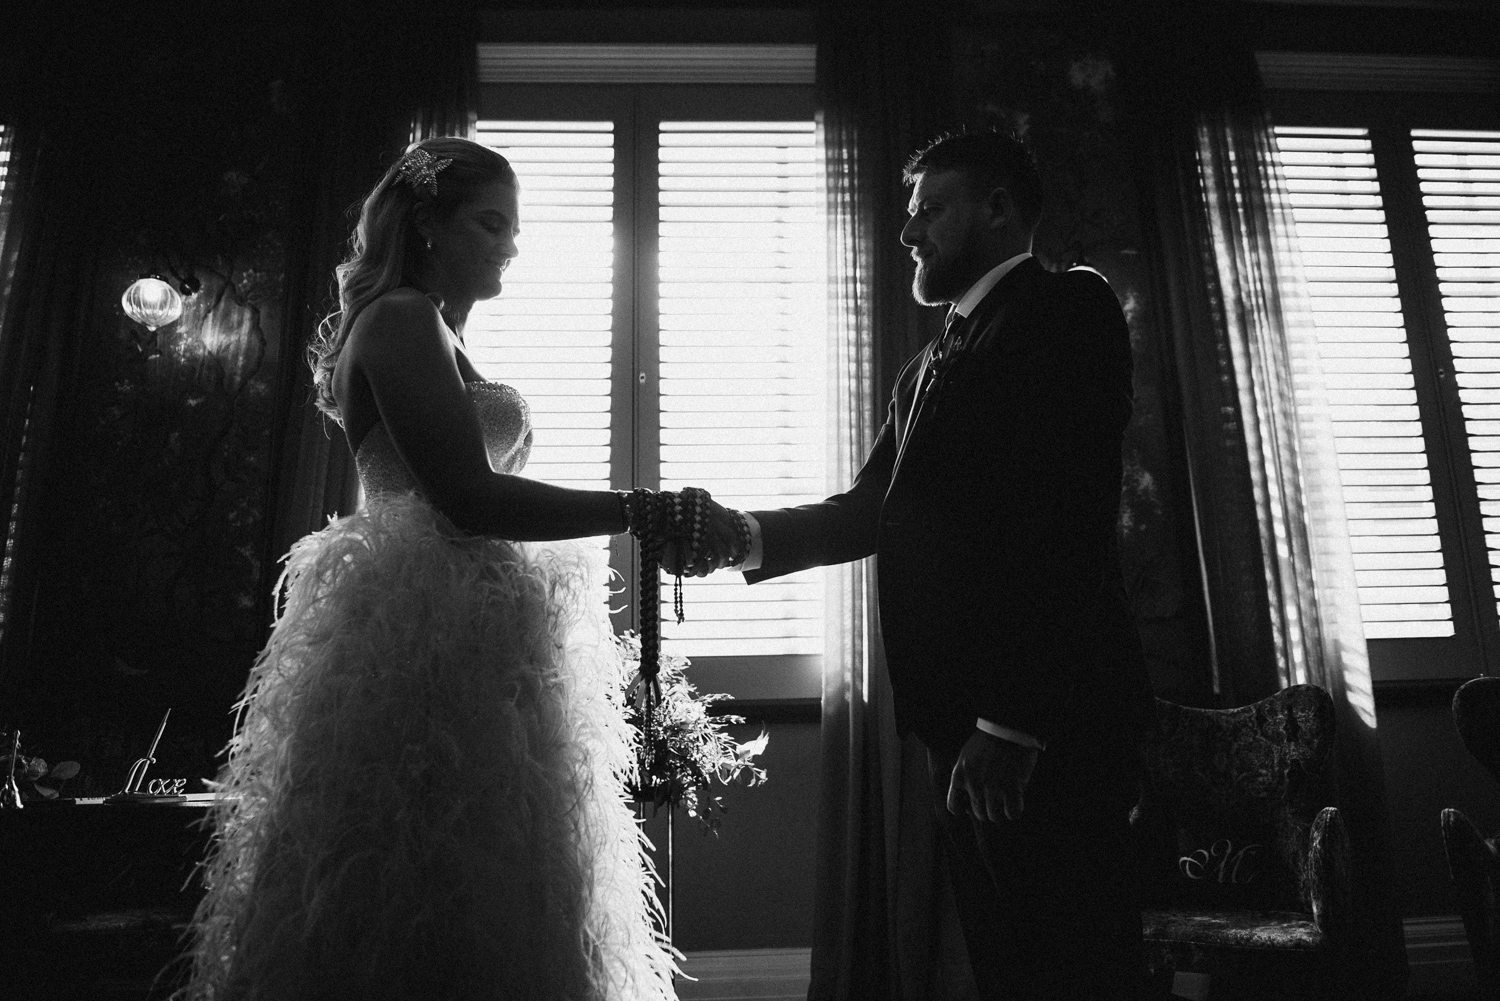 creative silhouette of bride and groom